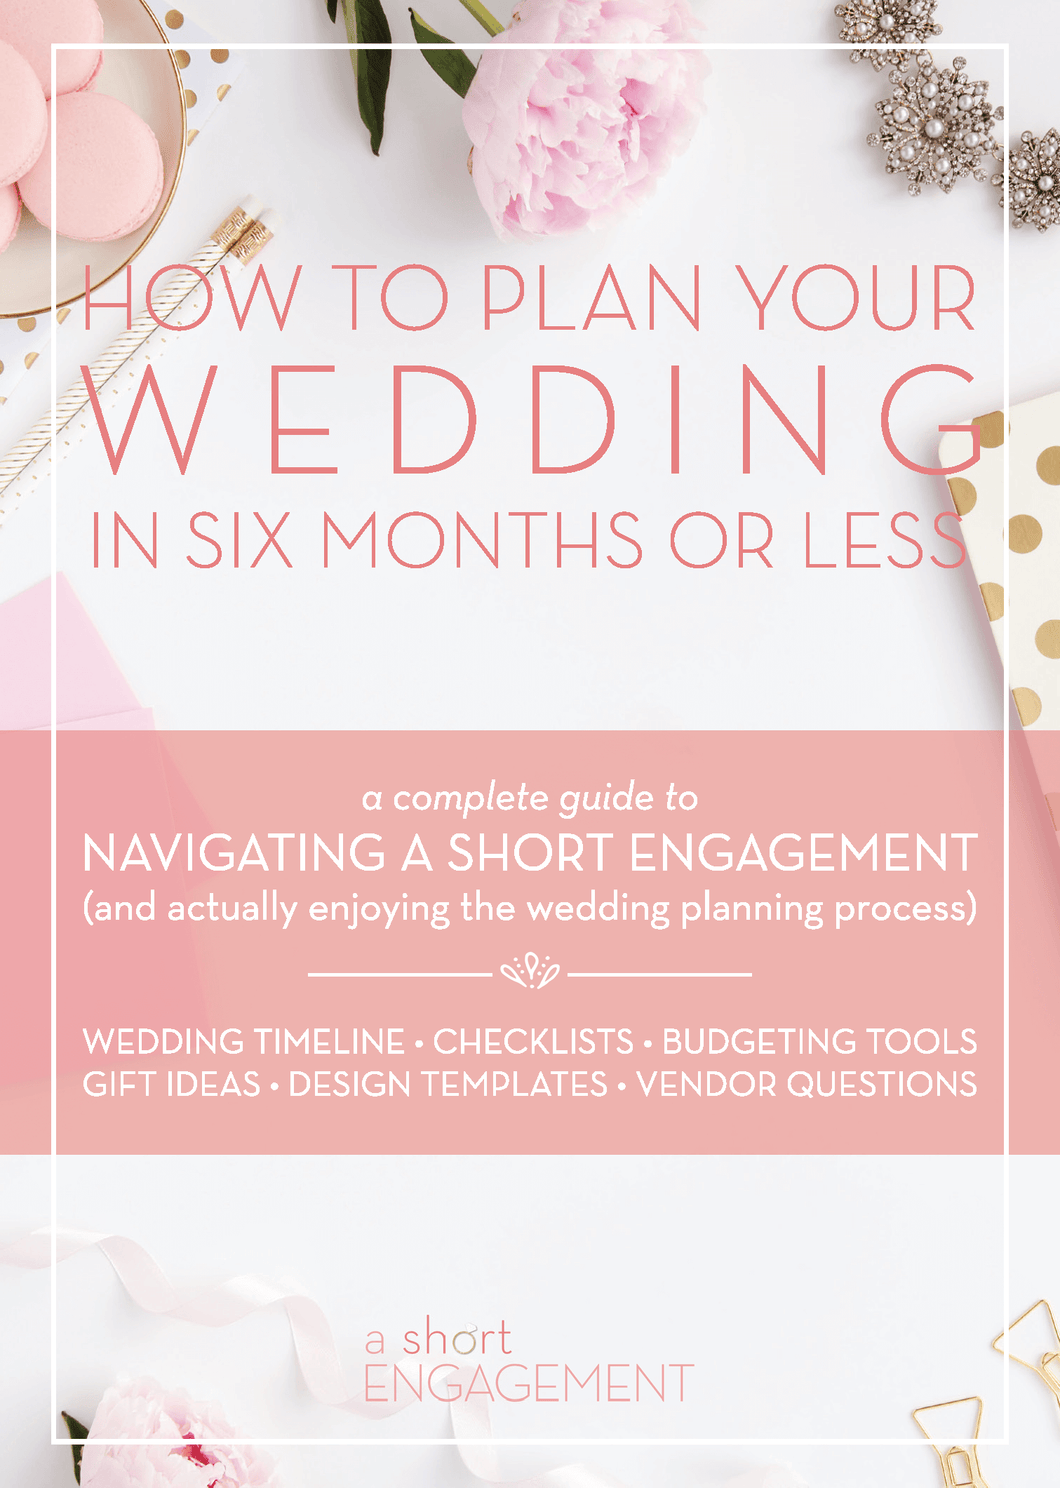 How to Plan Your Wedding in Six Months or Less | Digital Planning Guide